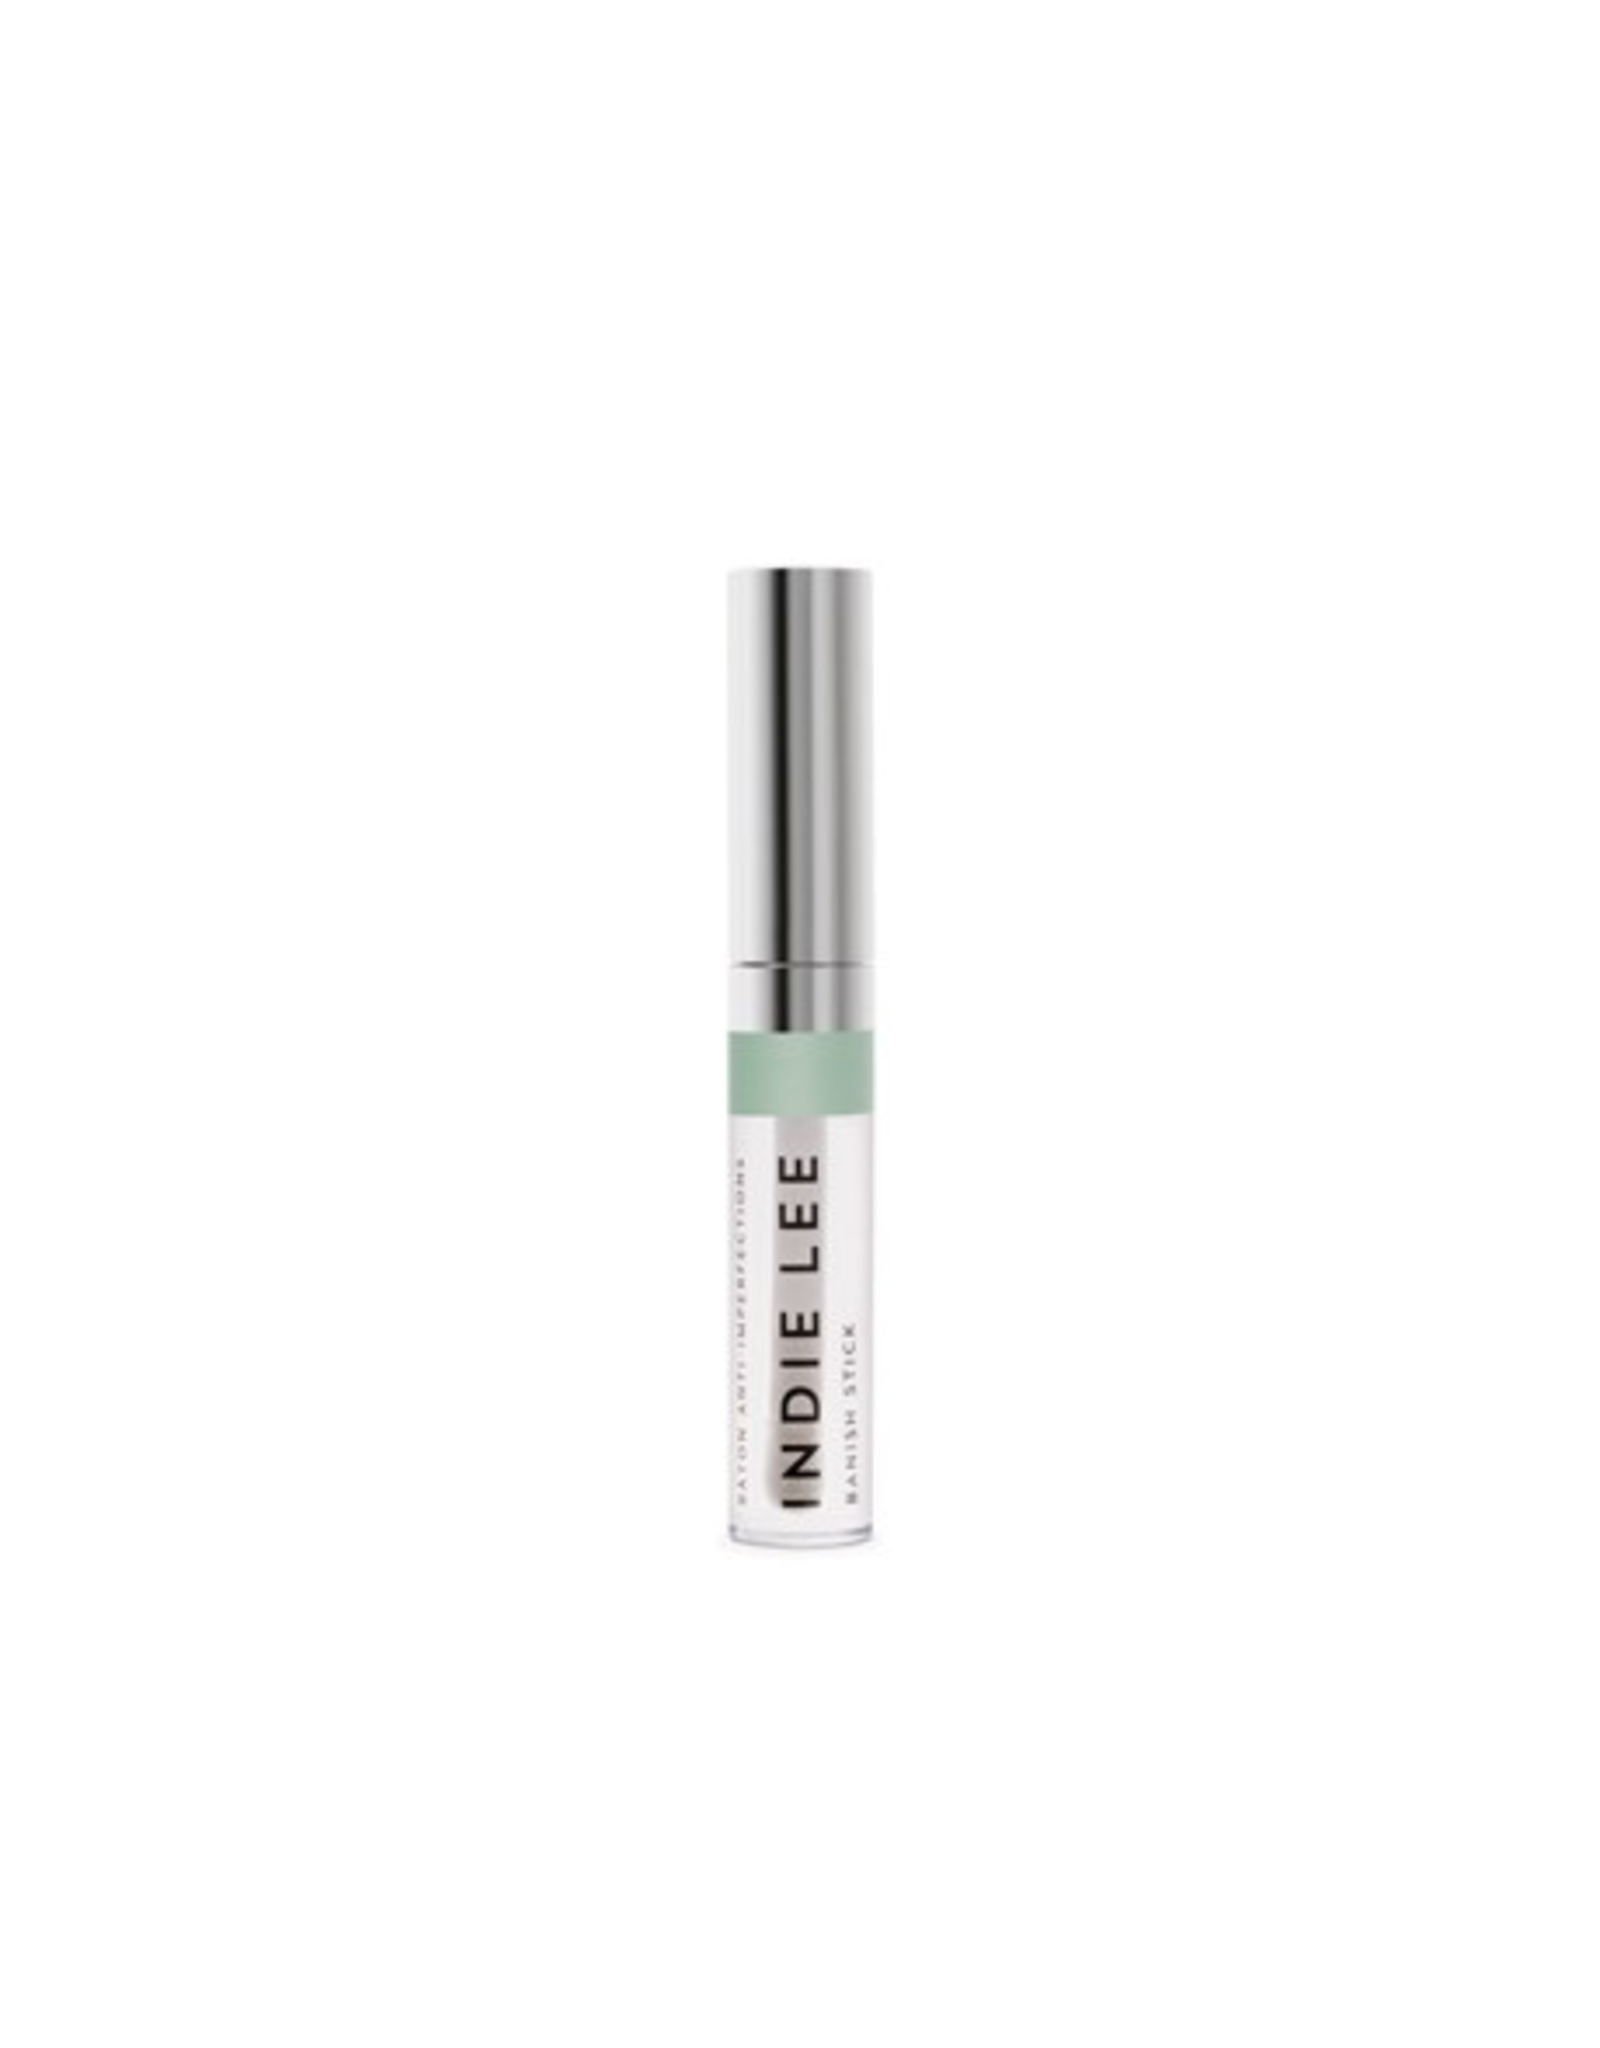 INDIE LEE Banish Stick (10 ml)